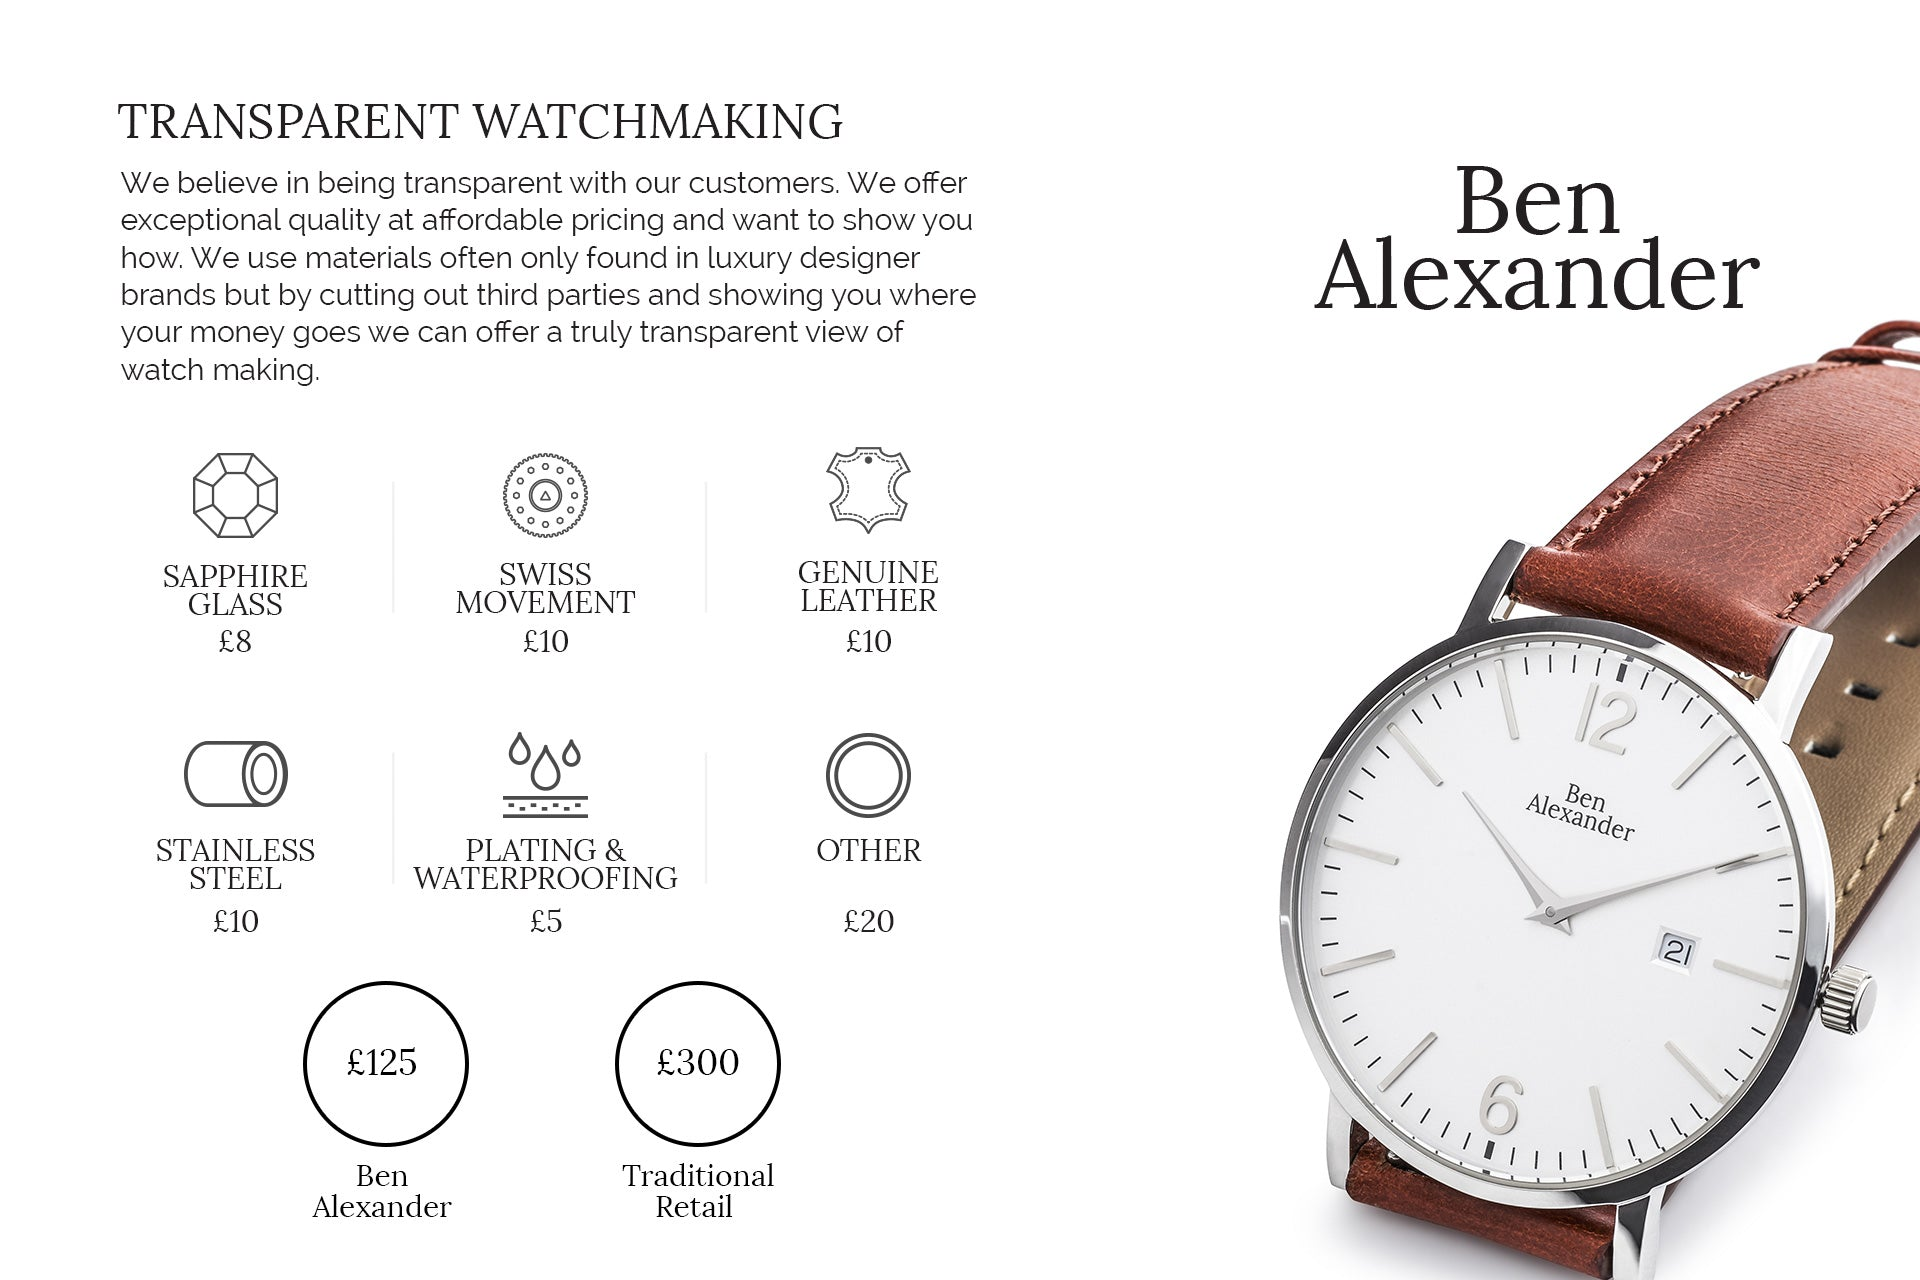 7a80fc42361 We created Ben Alexander to make timepieces that could last a generation.  We use the highest quality materials and offer some of the best value  watches in ...